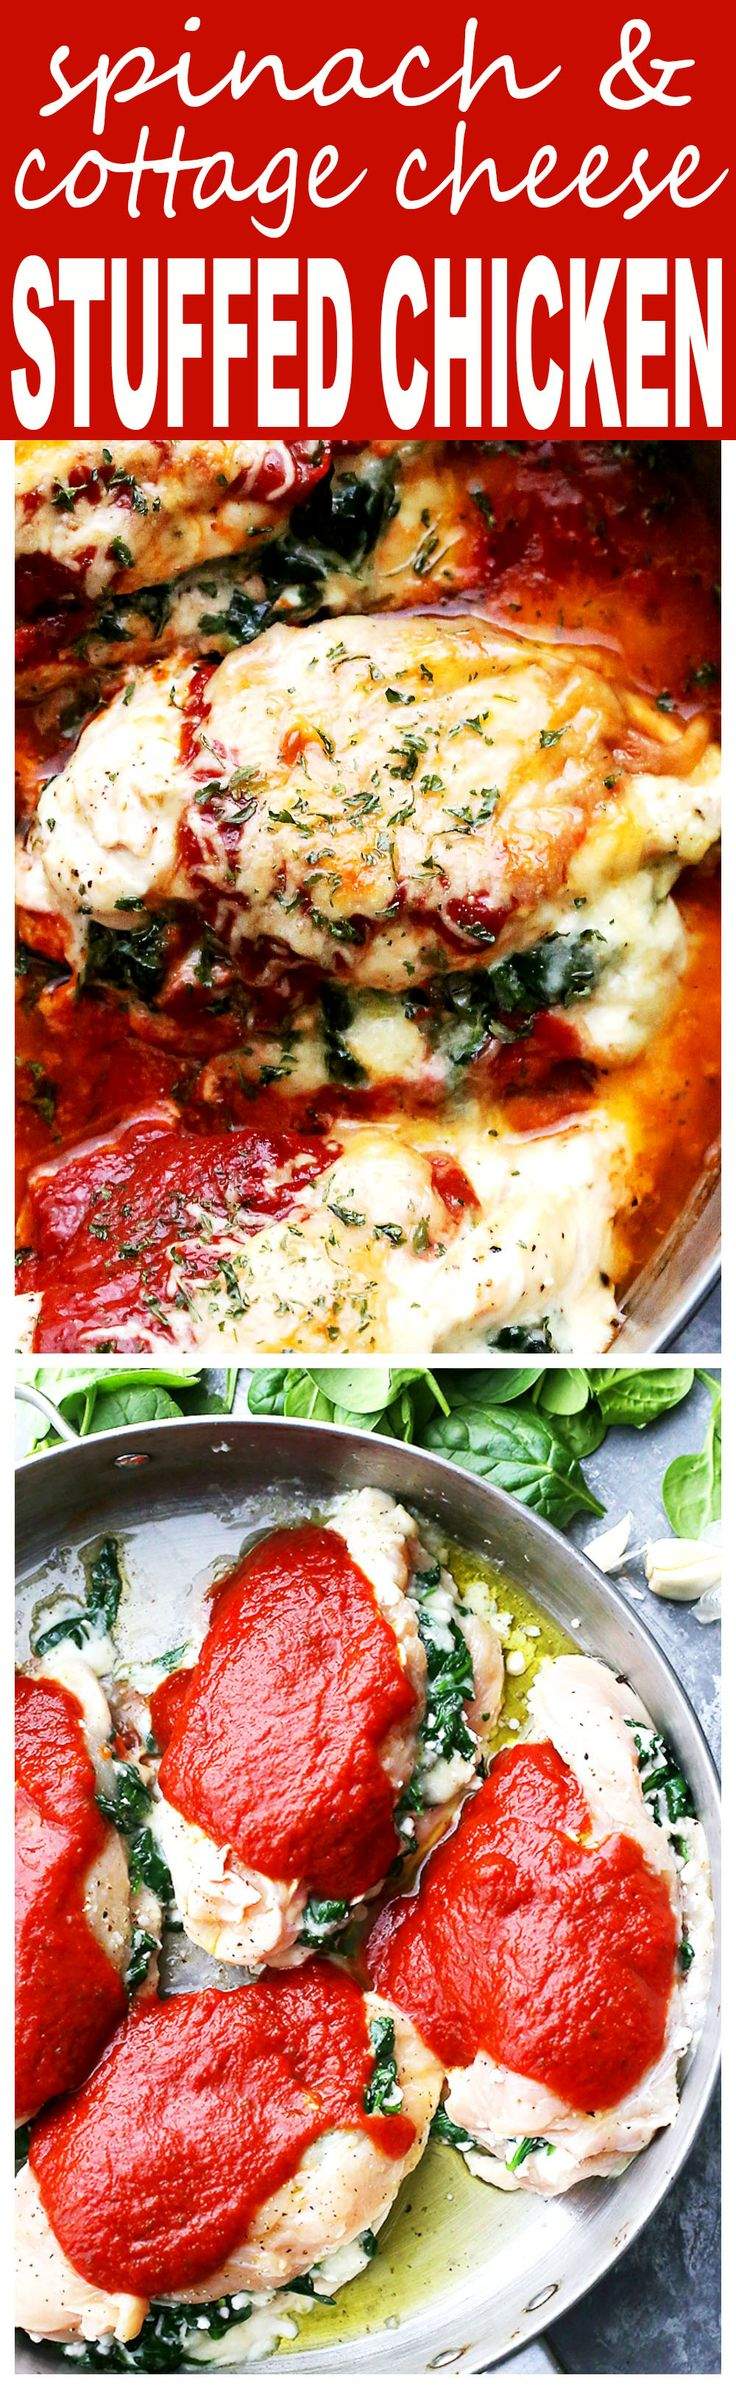 Saucy Spinach and Cottage Cheese Stuffed Chicken - Easy, delicious, yet healthy stuffed chicken breasts with spinach and cottage cheese, all baked in a hot and bubbly pasta sauce